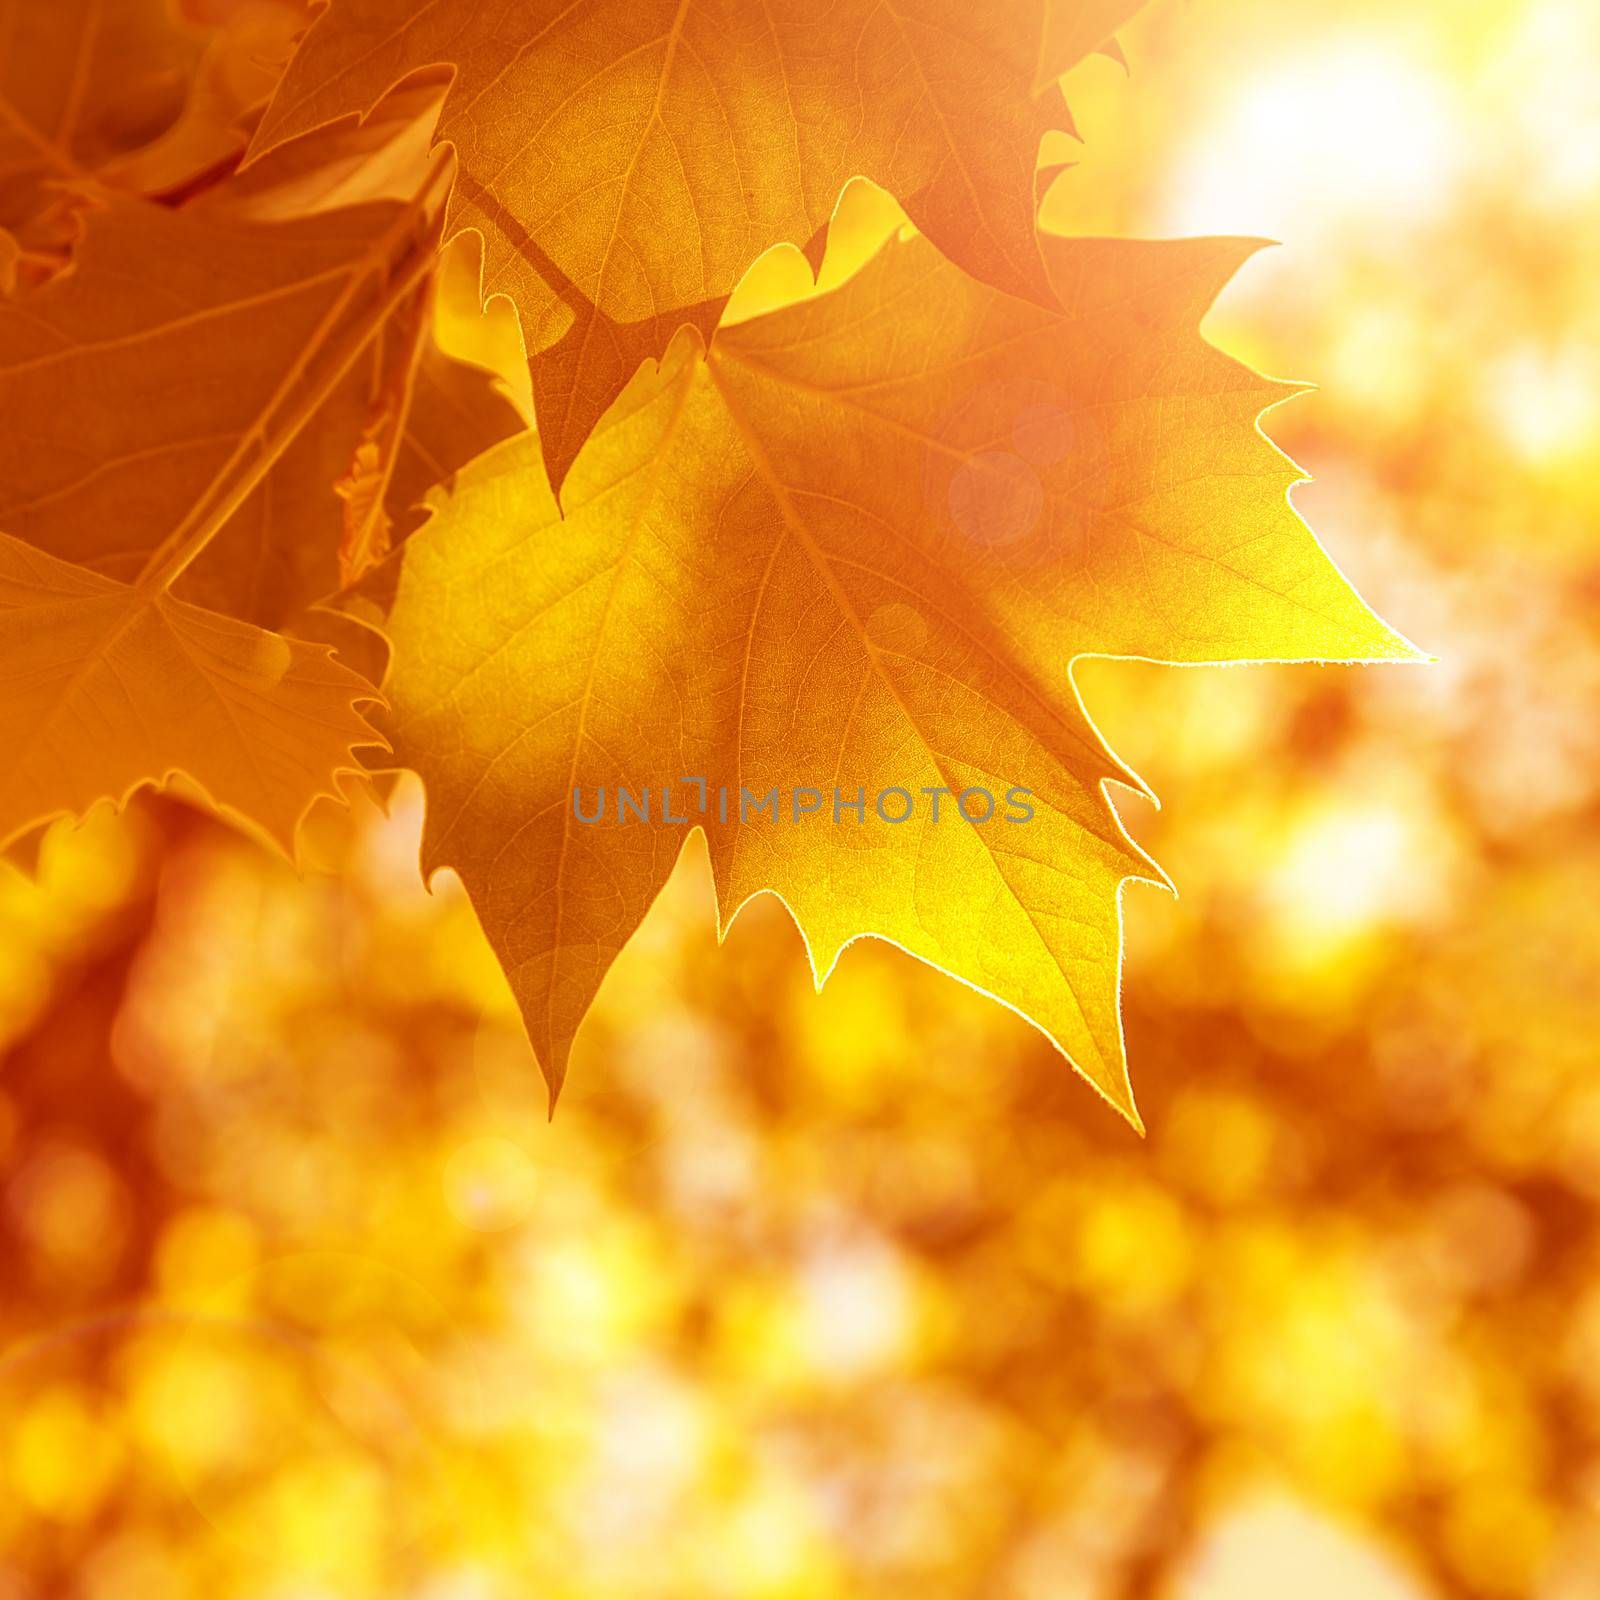 Abstract autumn background, old orange maple leaves, dry tree foliage, soft focus, autumnal season, changing of nature, bright sunlight